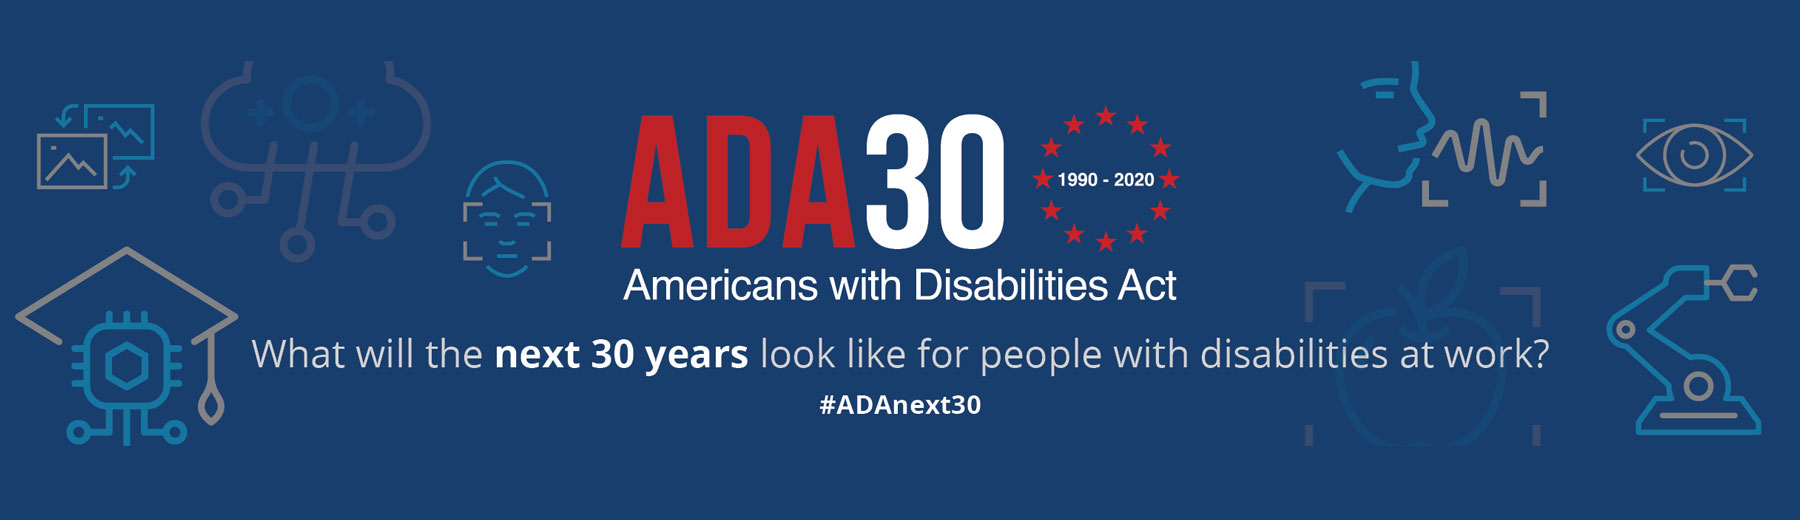 ADA30 1990-2020 - Americans with Disabilities Act. What will the next 30 years look like for people with disabilities at work? #ADAnext30